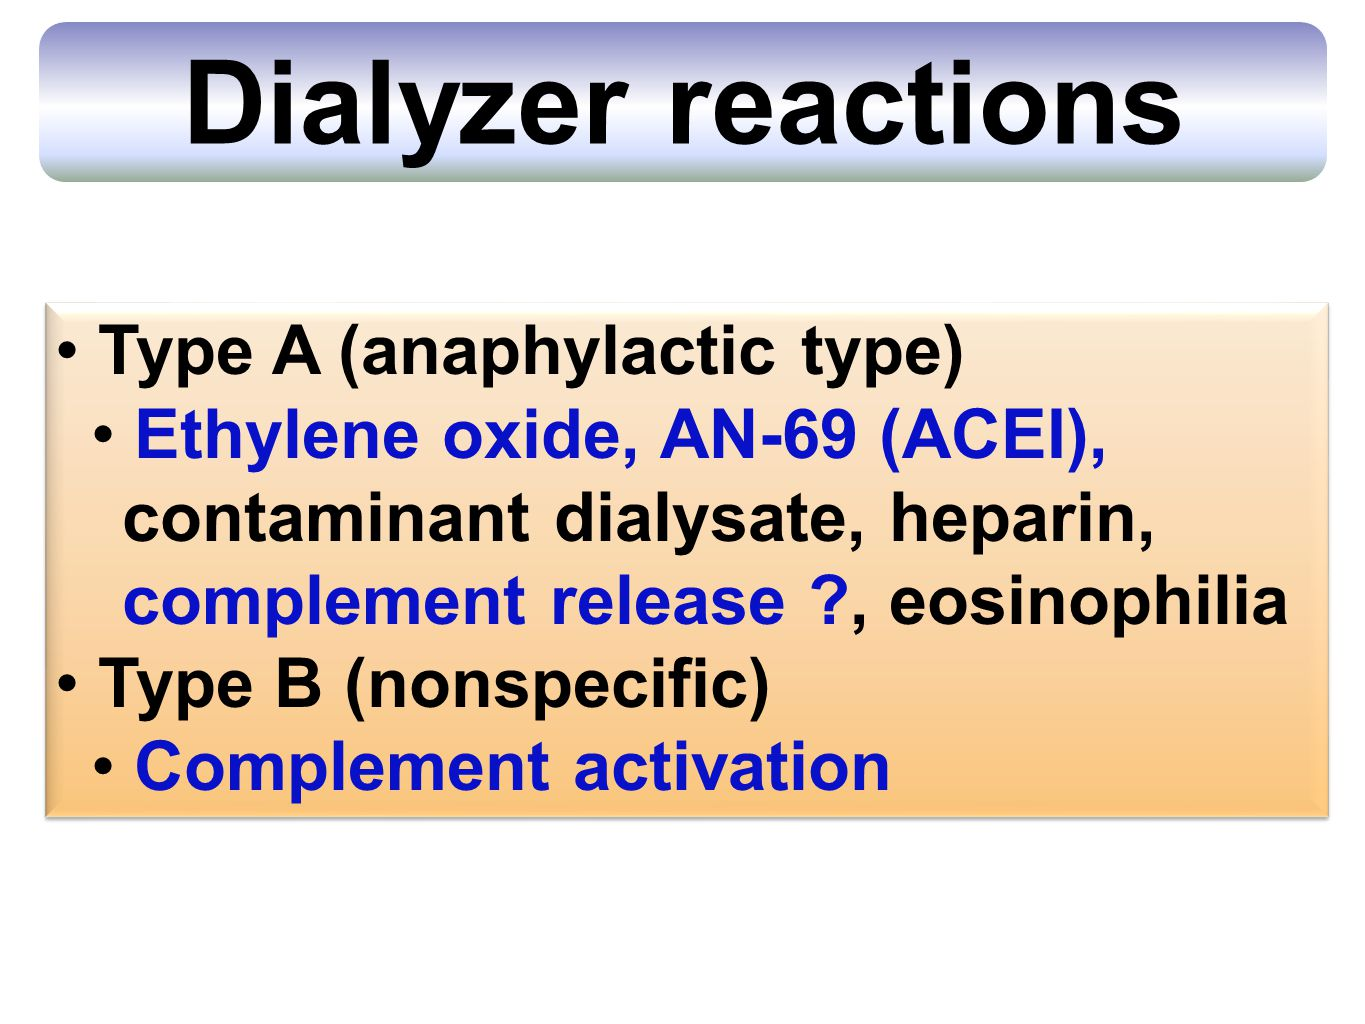 Type A (anaphylactic type) Ethylene oxide, AN-69 (ACEI), contaminant dialysate, heparin, complement release ?, eosinophilia Type B (nonspecific) Complement activation Type A (anaphylactic type) Ethylene oxide, AN-69 (ACEI), contaminant dialysate, heparin, complement release ?, eosinophilia Type B (nonspecific) Complement activation Dialyzer reactions